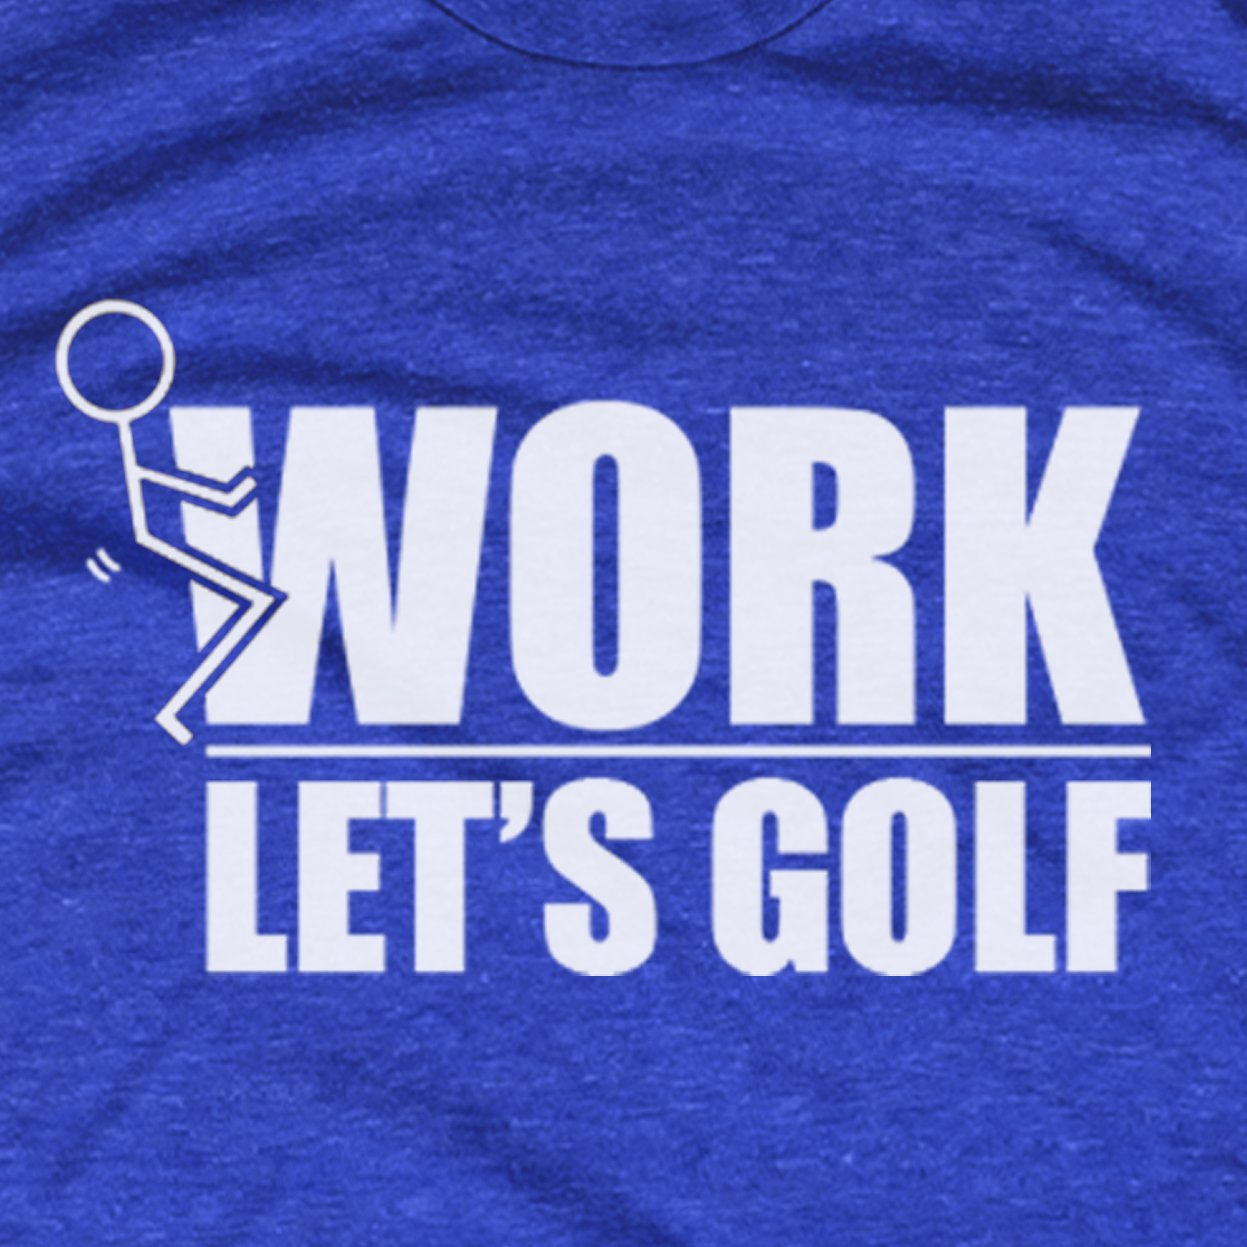 Tastefully Offensive Graphic Golf T-shirts